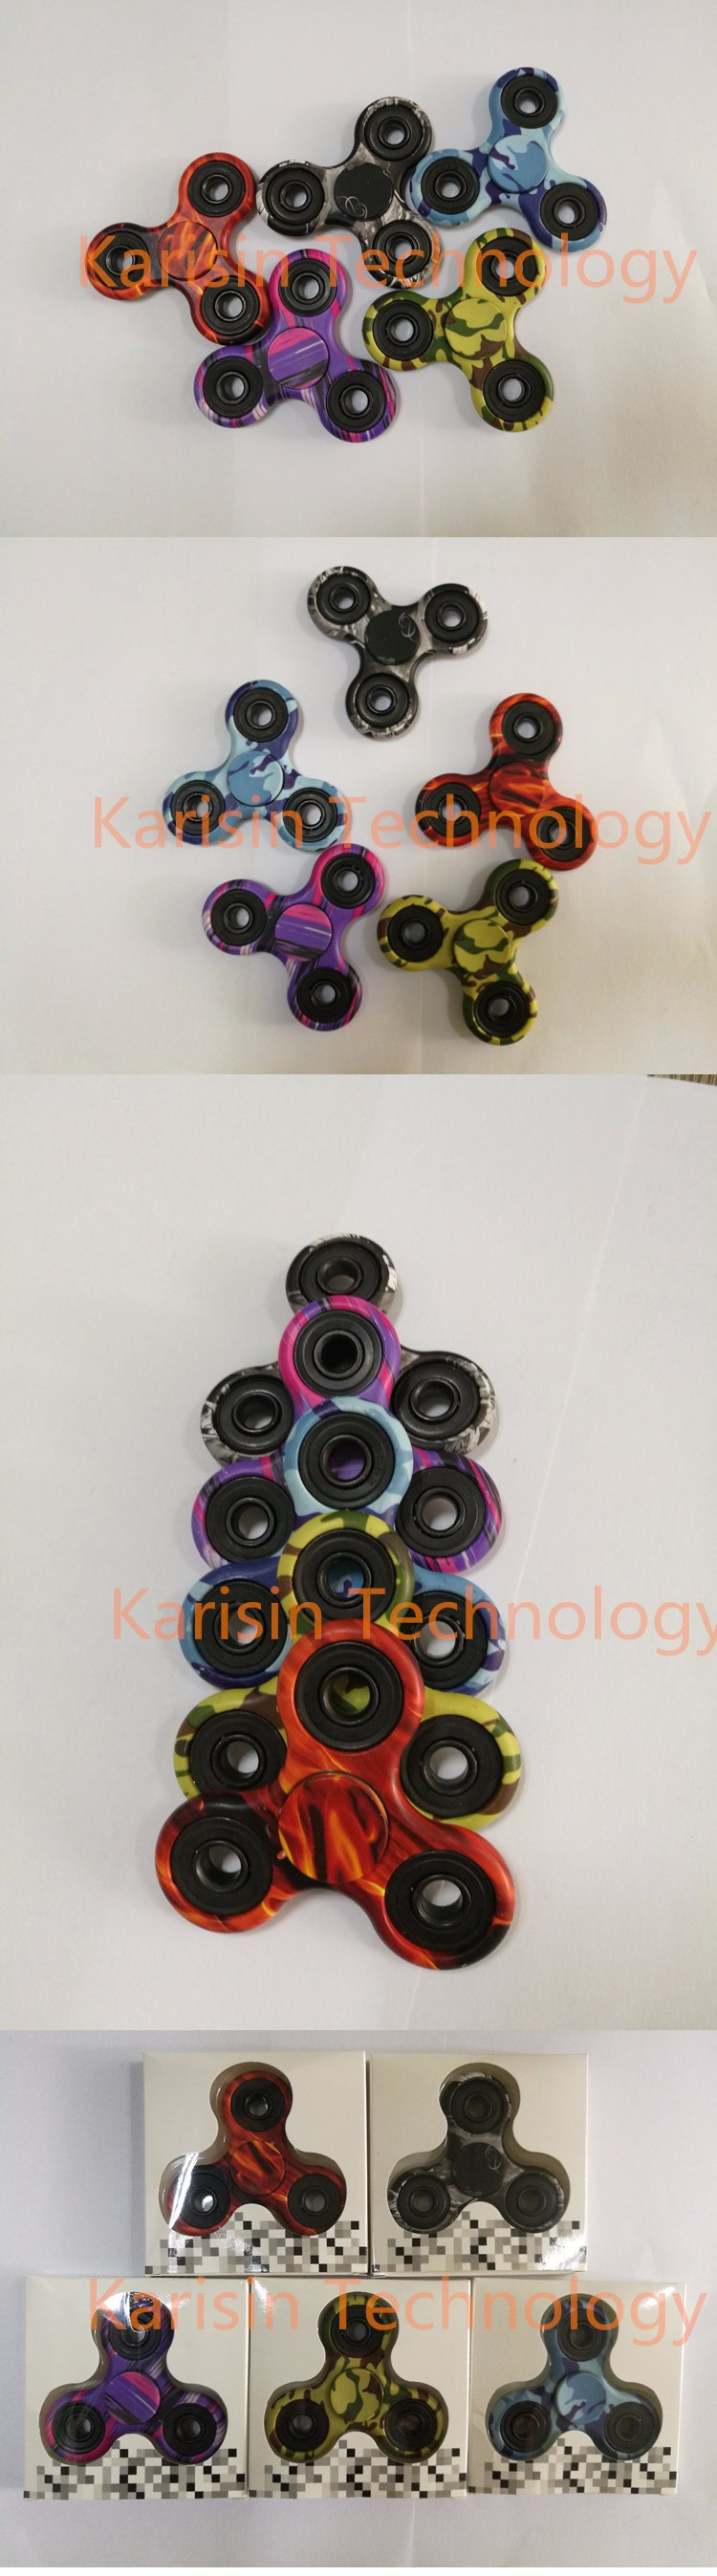 ABS Triple sides Hands camo color fidget spinners-cheap spinner with long time spin